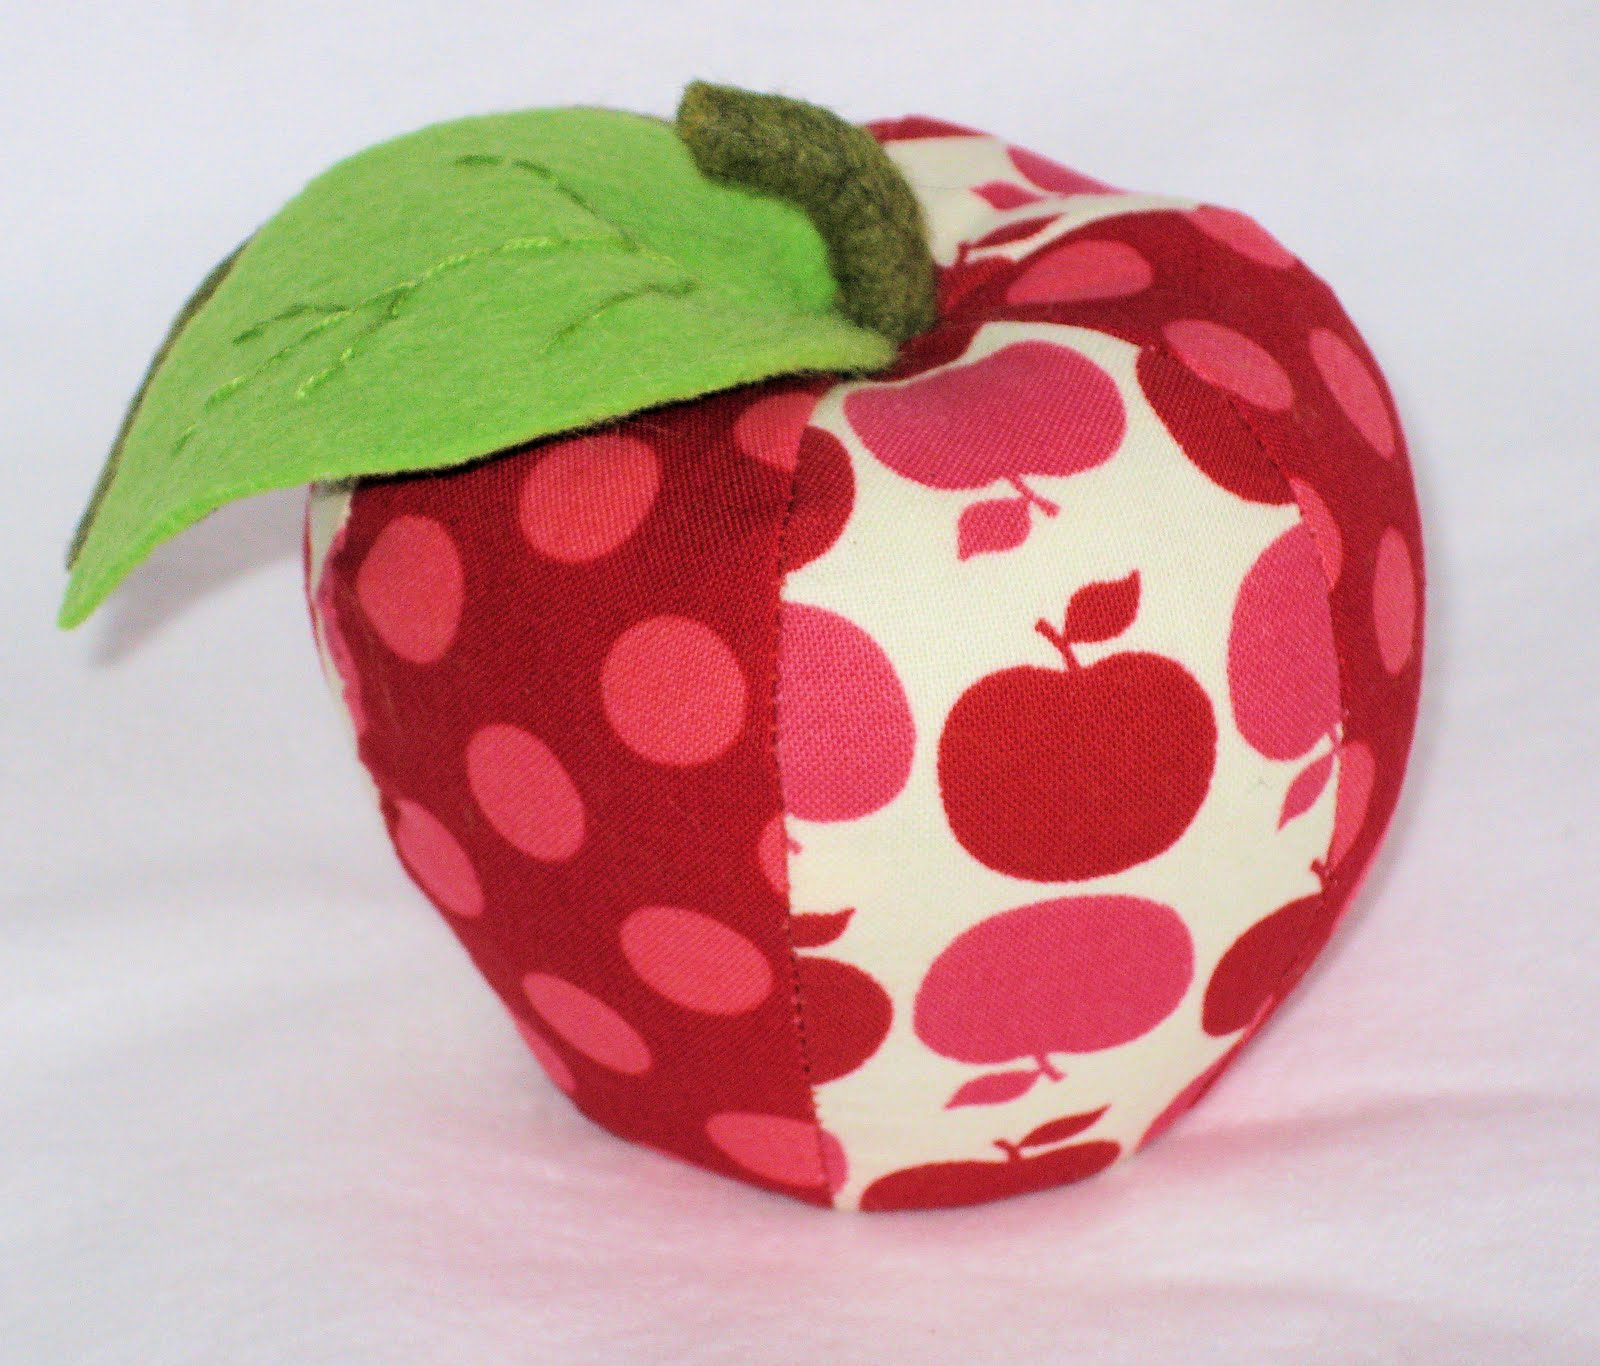 gnittinknam: Making an Apple (Pumpkin) pincushion